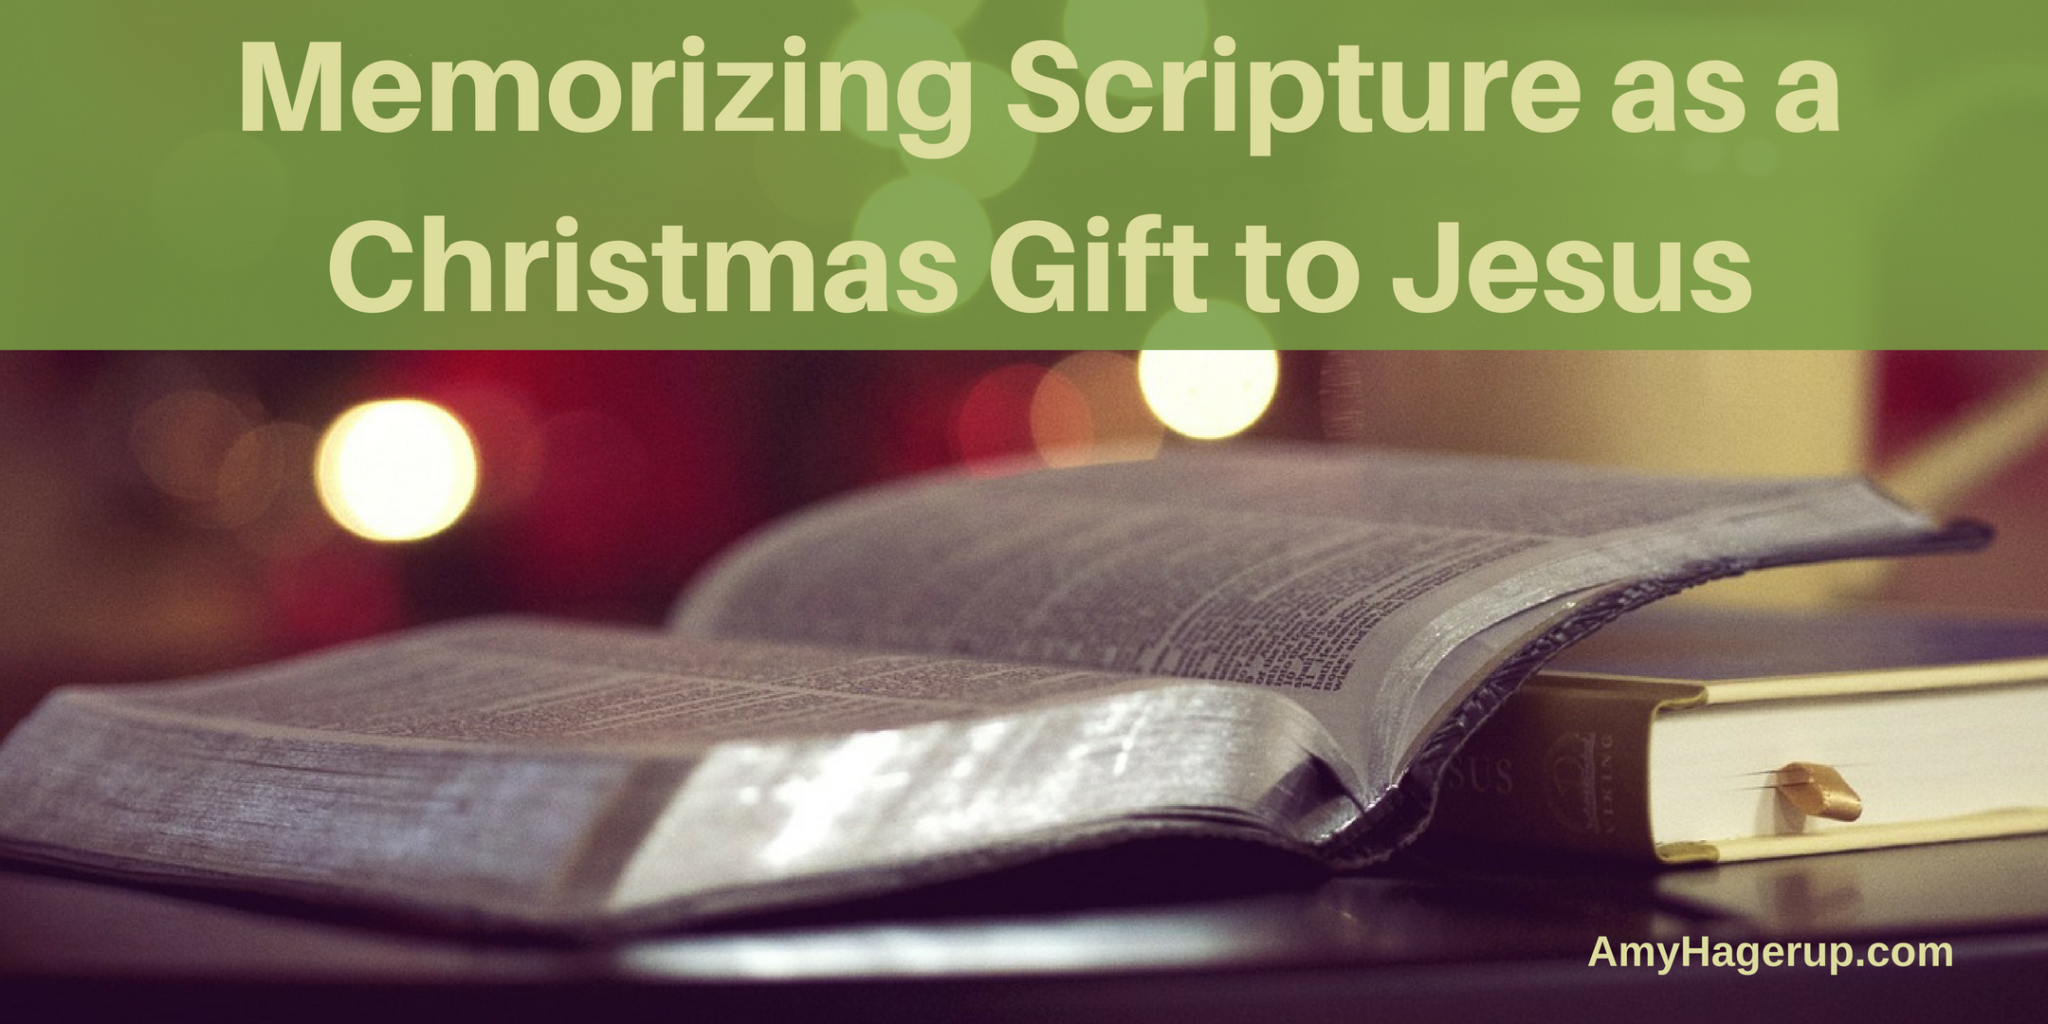 Memorizing scripture is awesome as a Christmas gift to Jesus. Do it as a family.